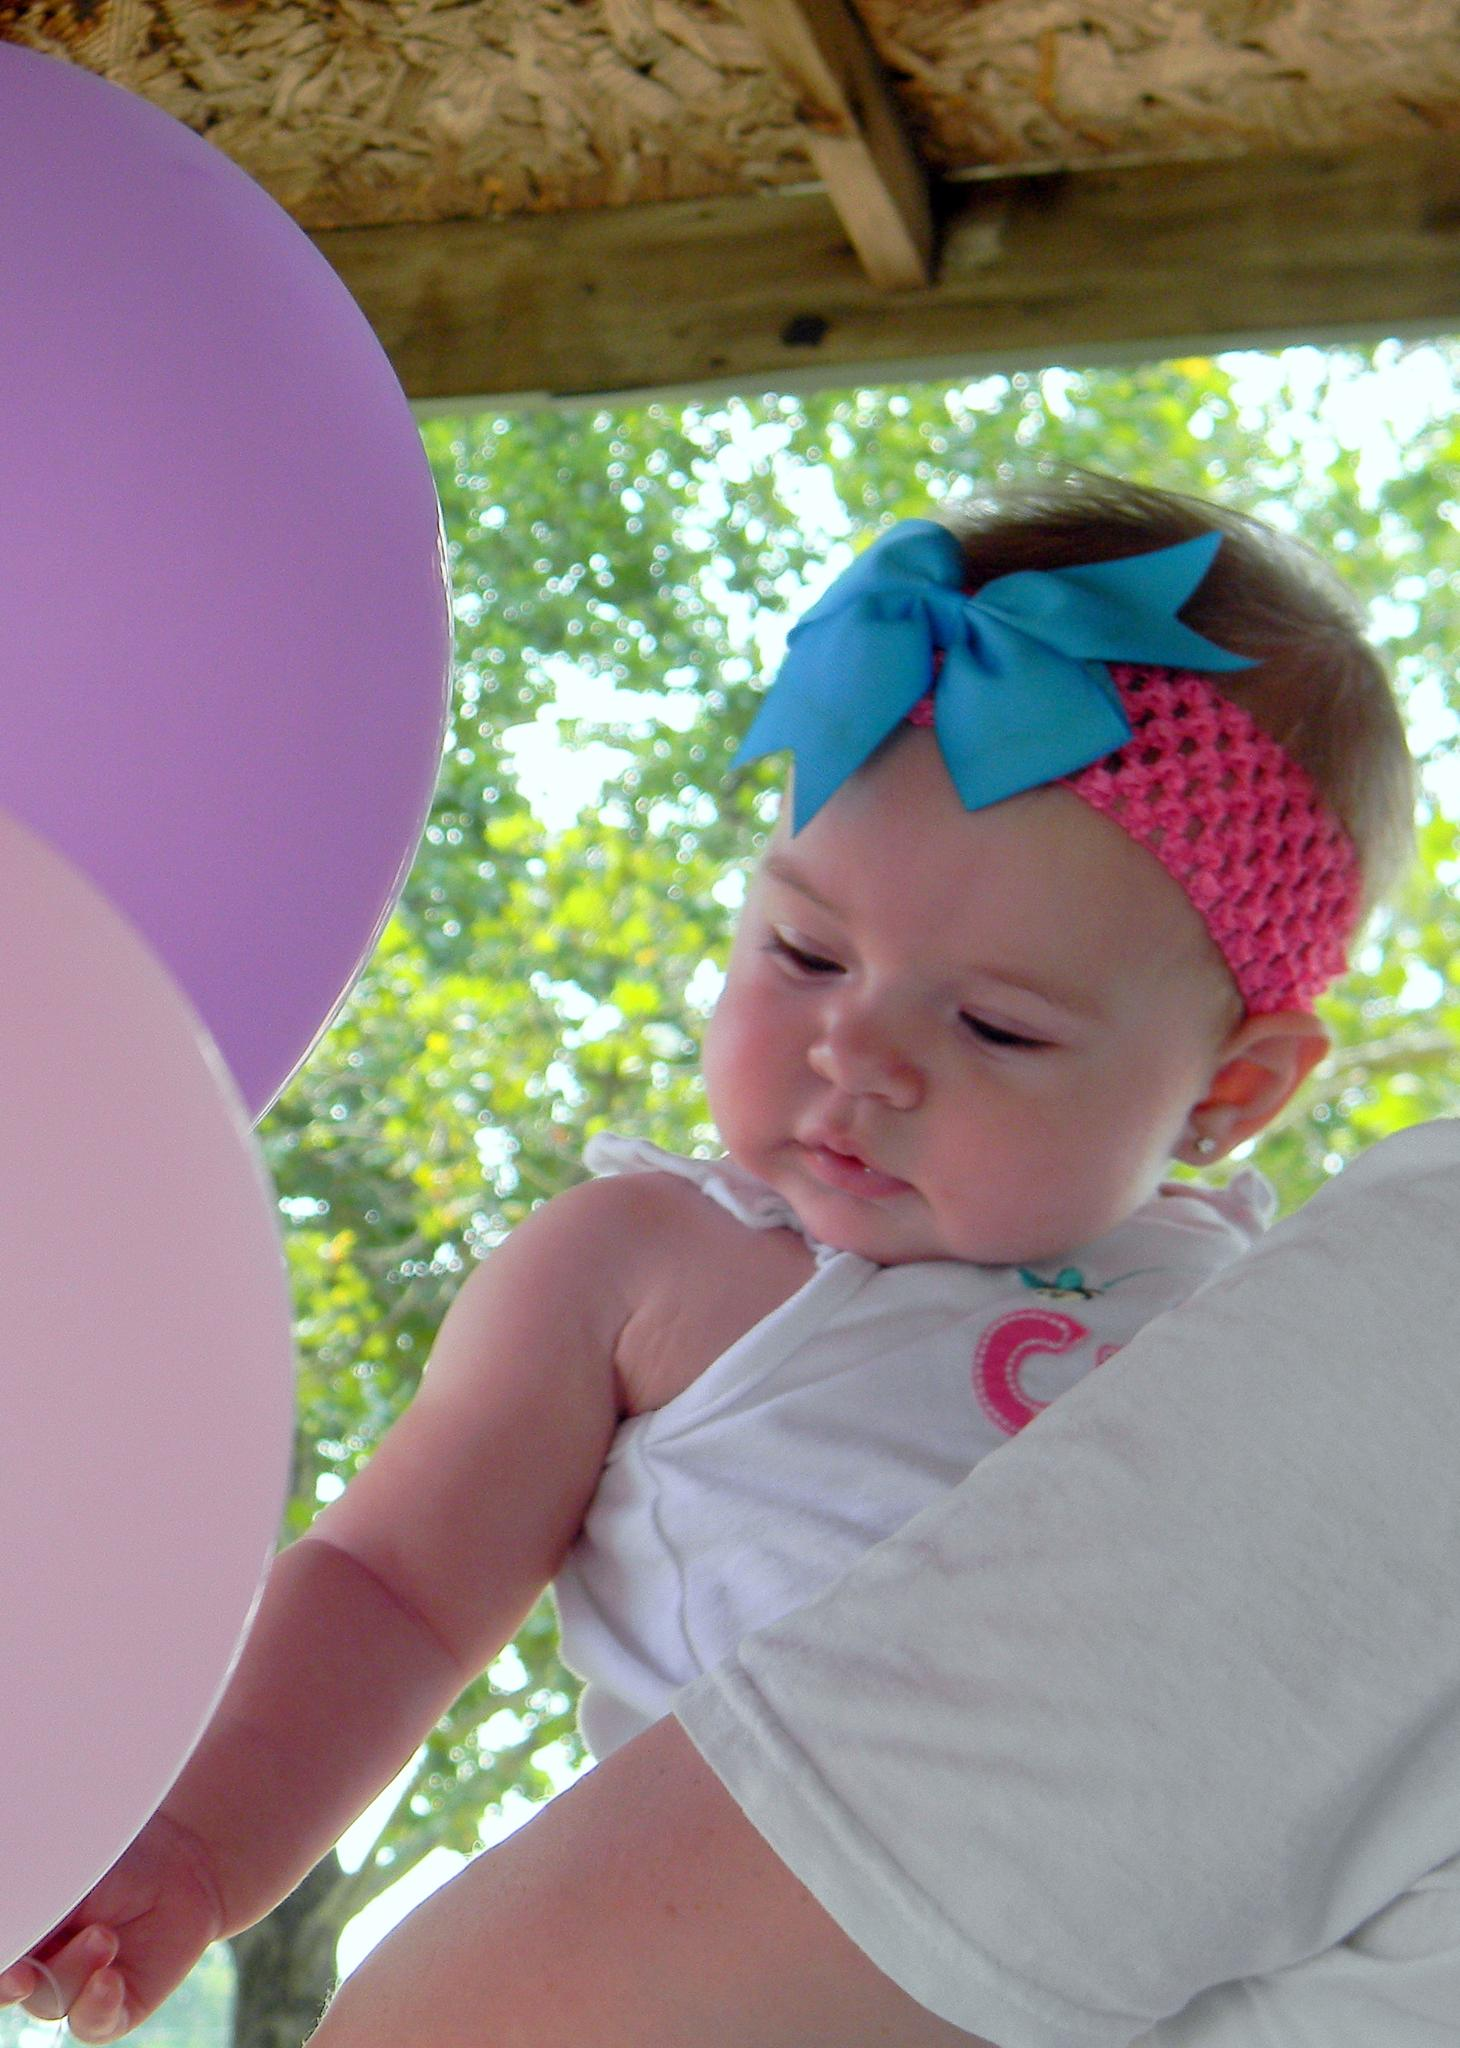 Kynleigh and Balloons by michellelynnsimmons